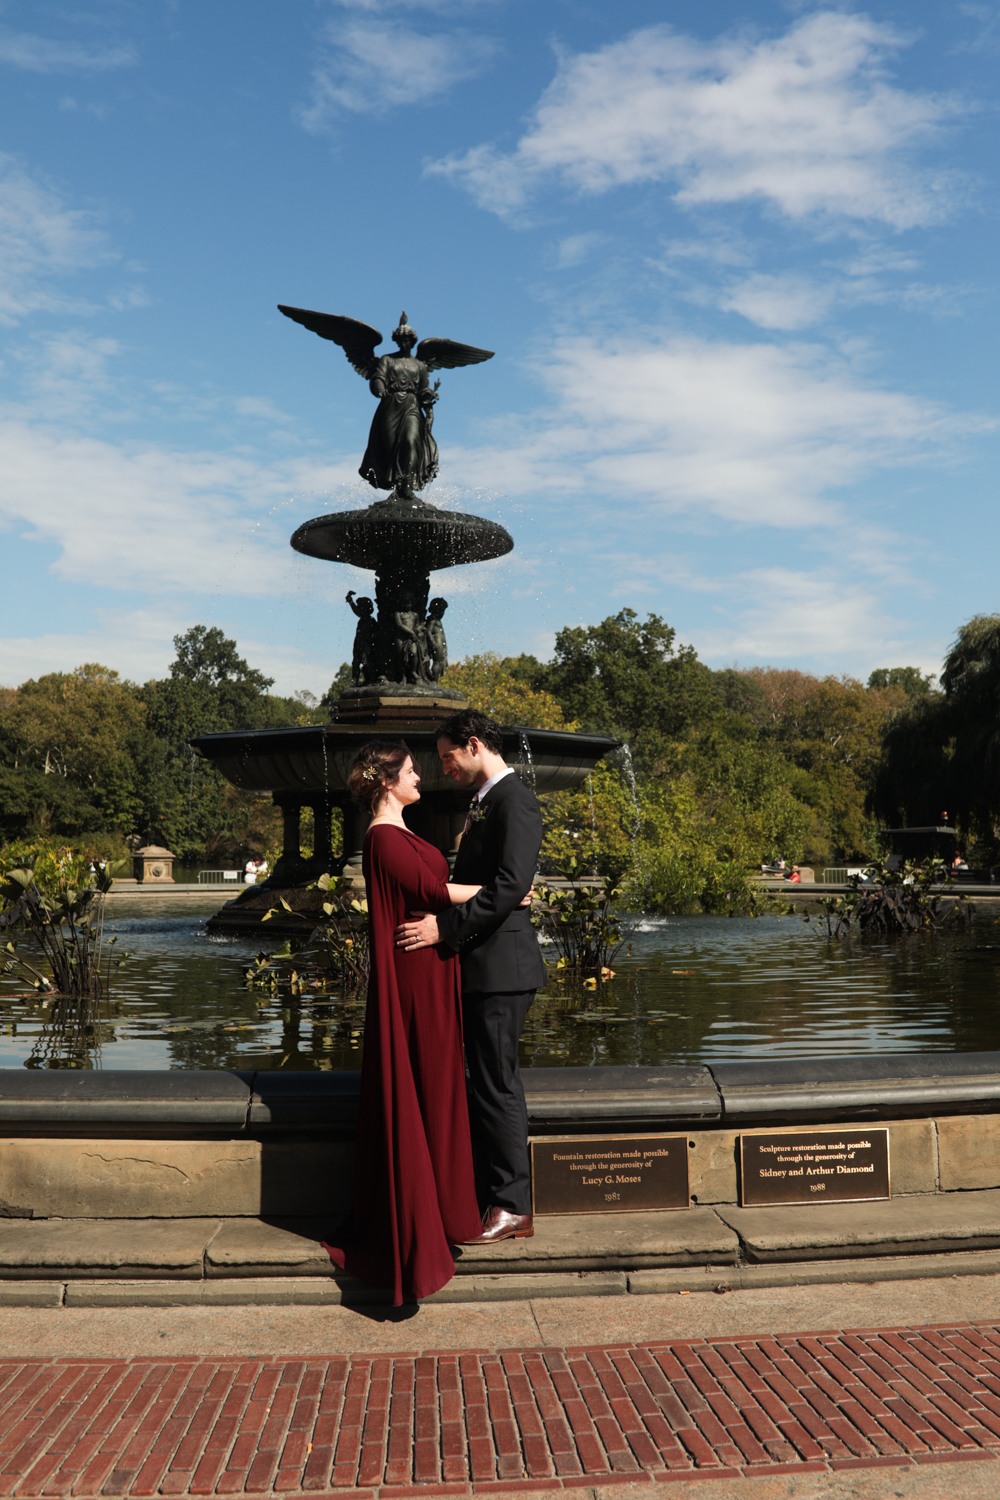 Portrait of a bride and groom at Bethesda Fountain in Central Park.